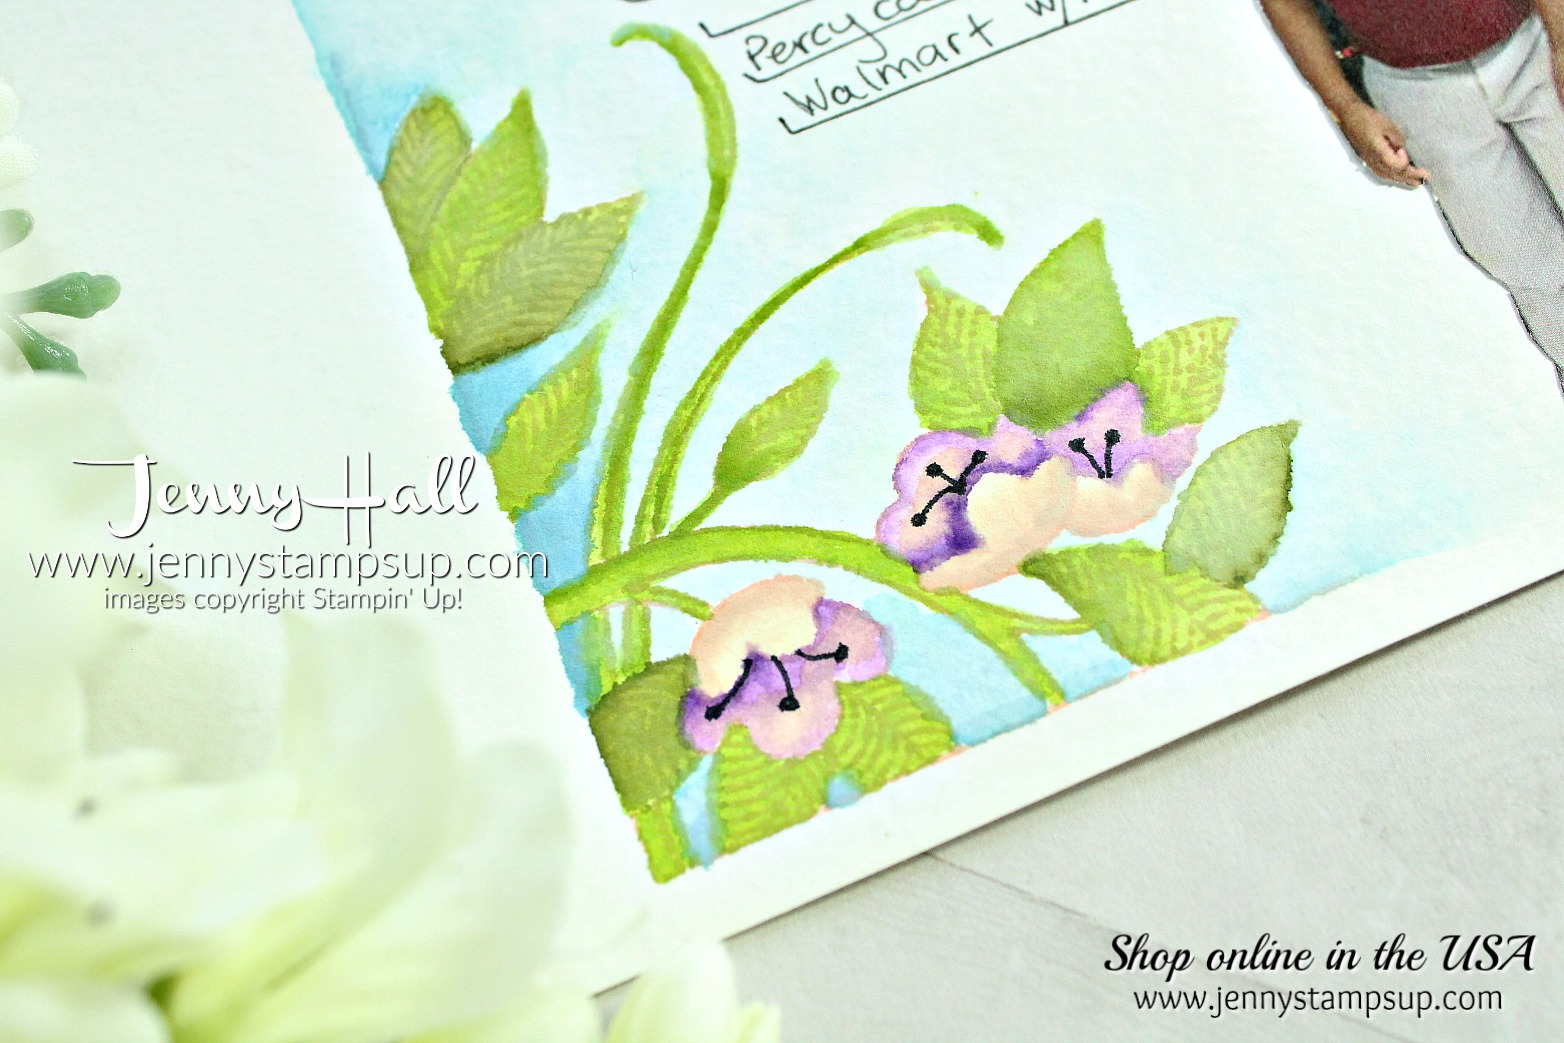 May Scrapbook Sunday Blog Hop page created by Jenny Hall at www.jennyhalldesign.com for #scrapbooking #serenegarden #watercolor #jennyhall #jenyhalldesign #jennystapsup #stamping #stampinup